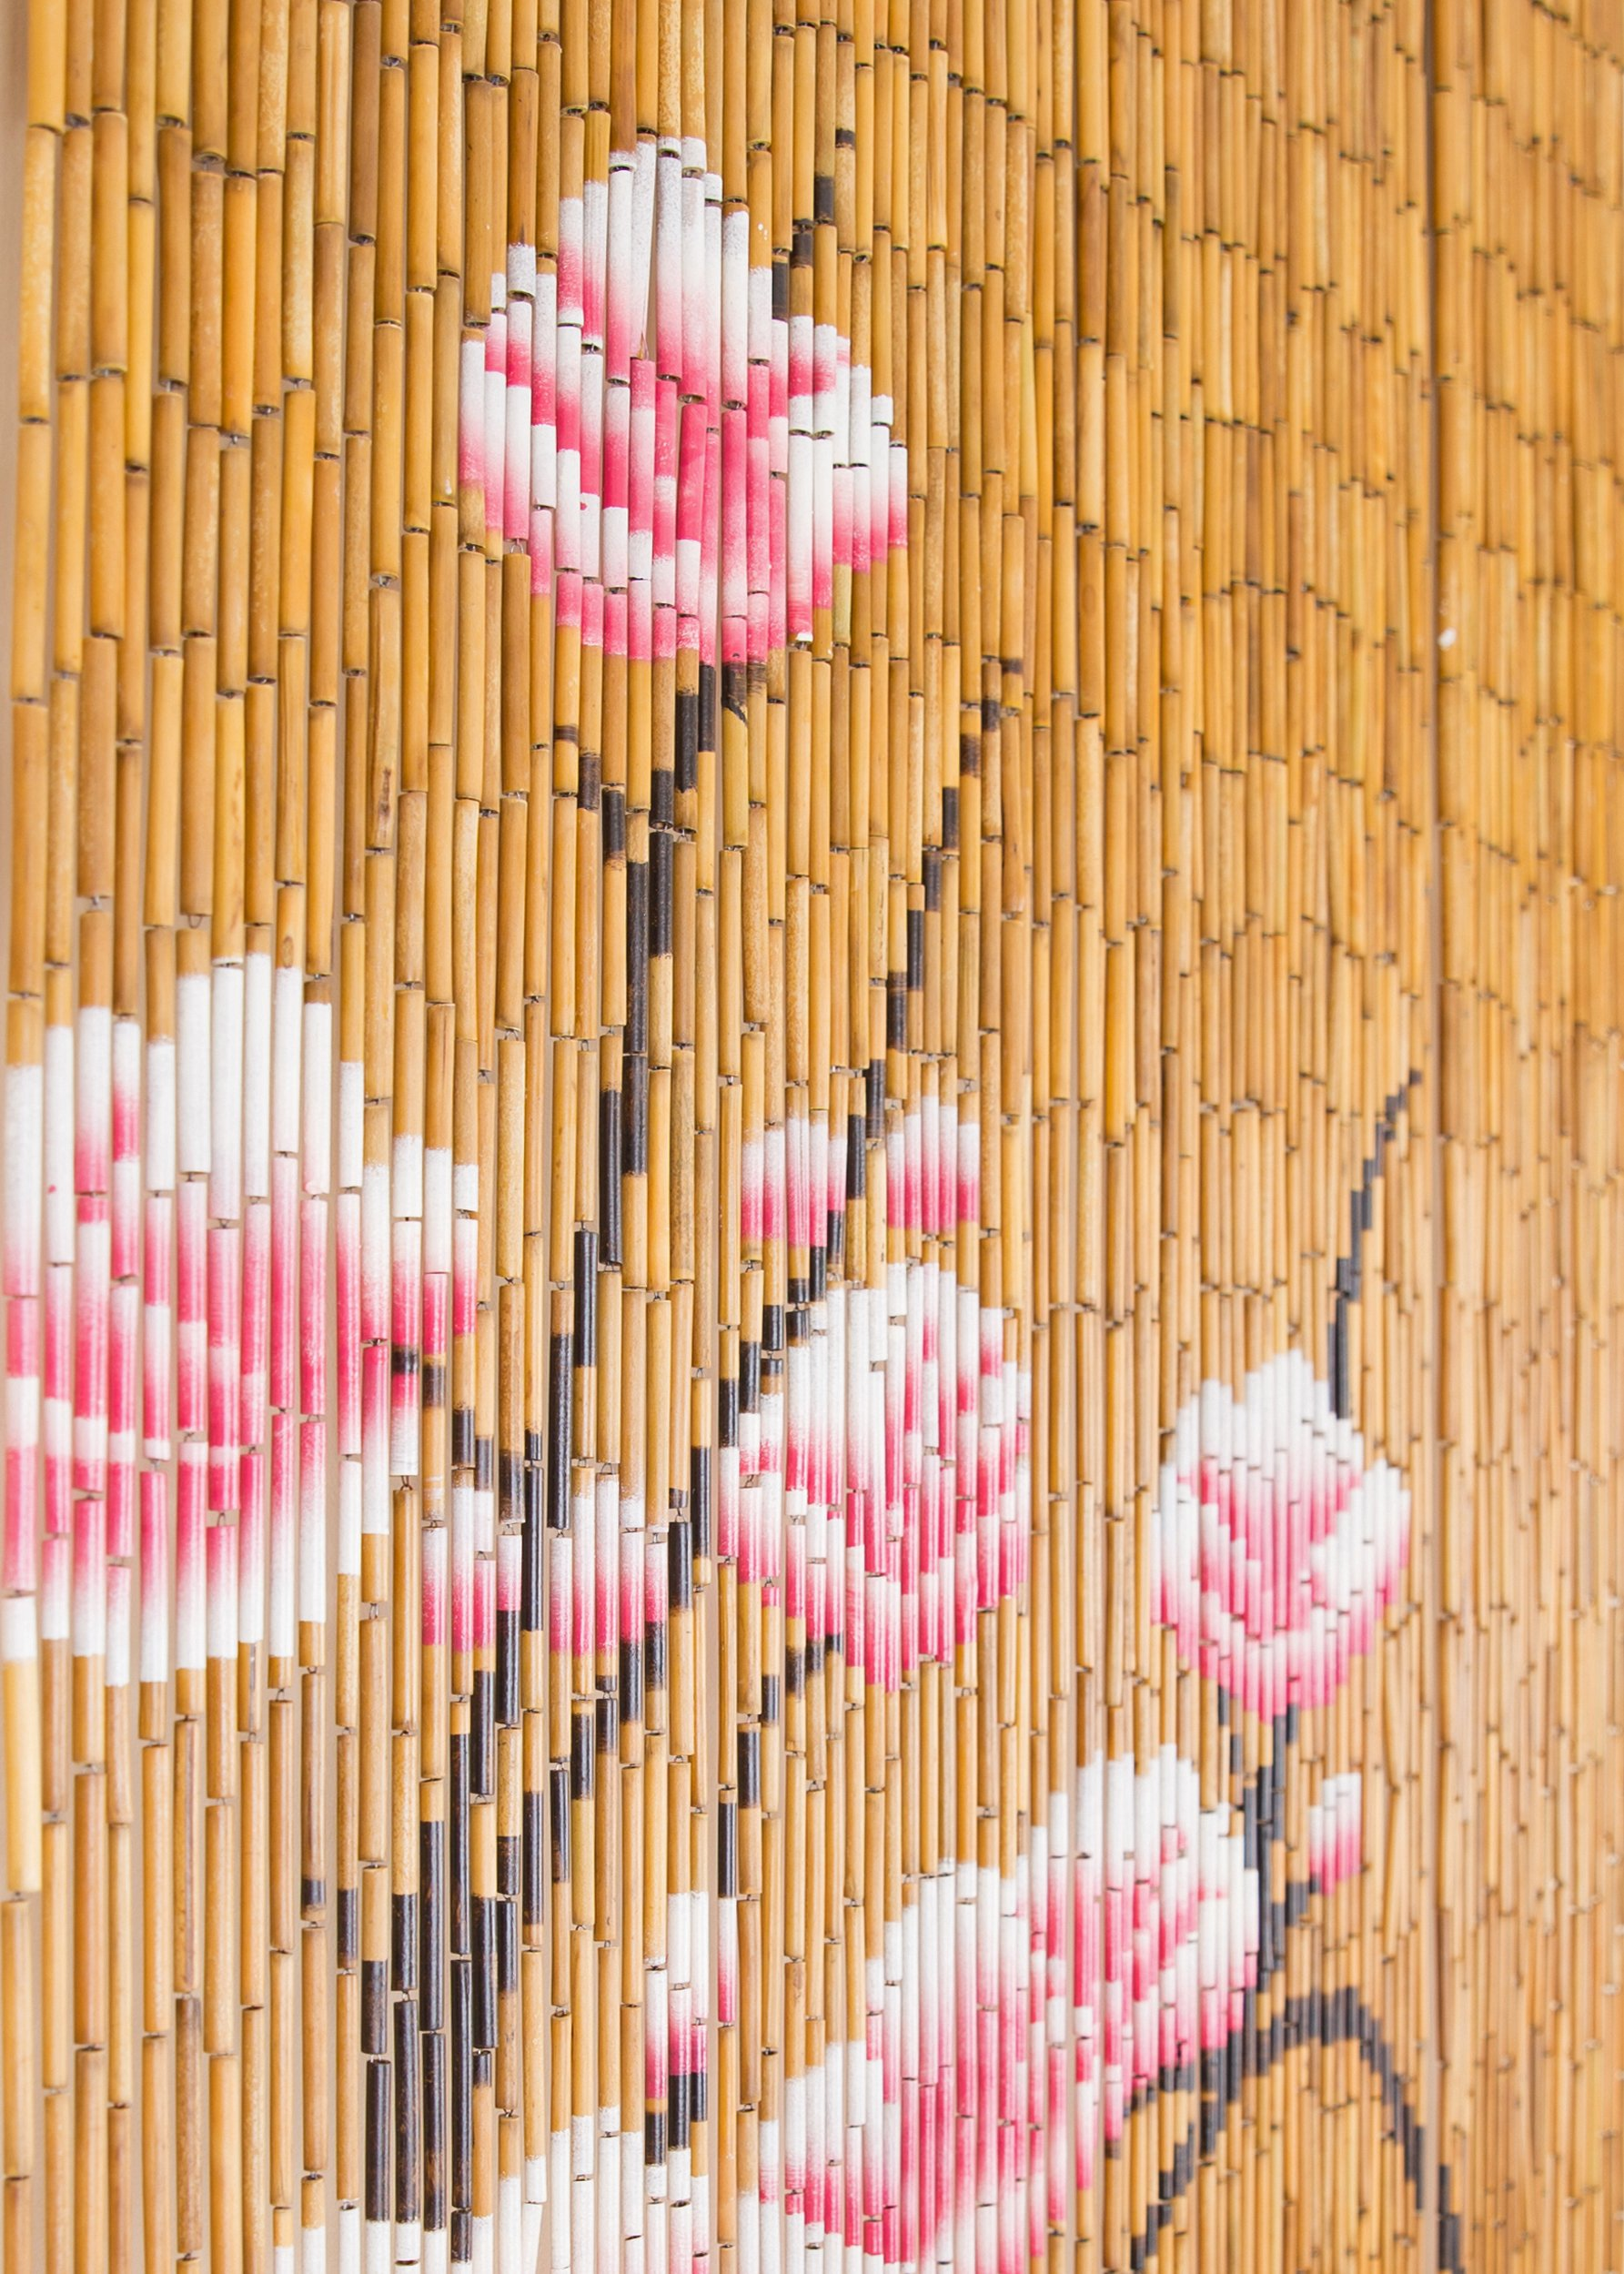 BeadedString Natural Bamboo Wood Beaded Curtain-90 Starnds-80 High-Boho Door Beads-Bohemian Doorway Curtain-35.5'' Wx80 H-Blossom by BeadedString (Image #5)